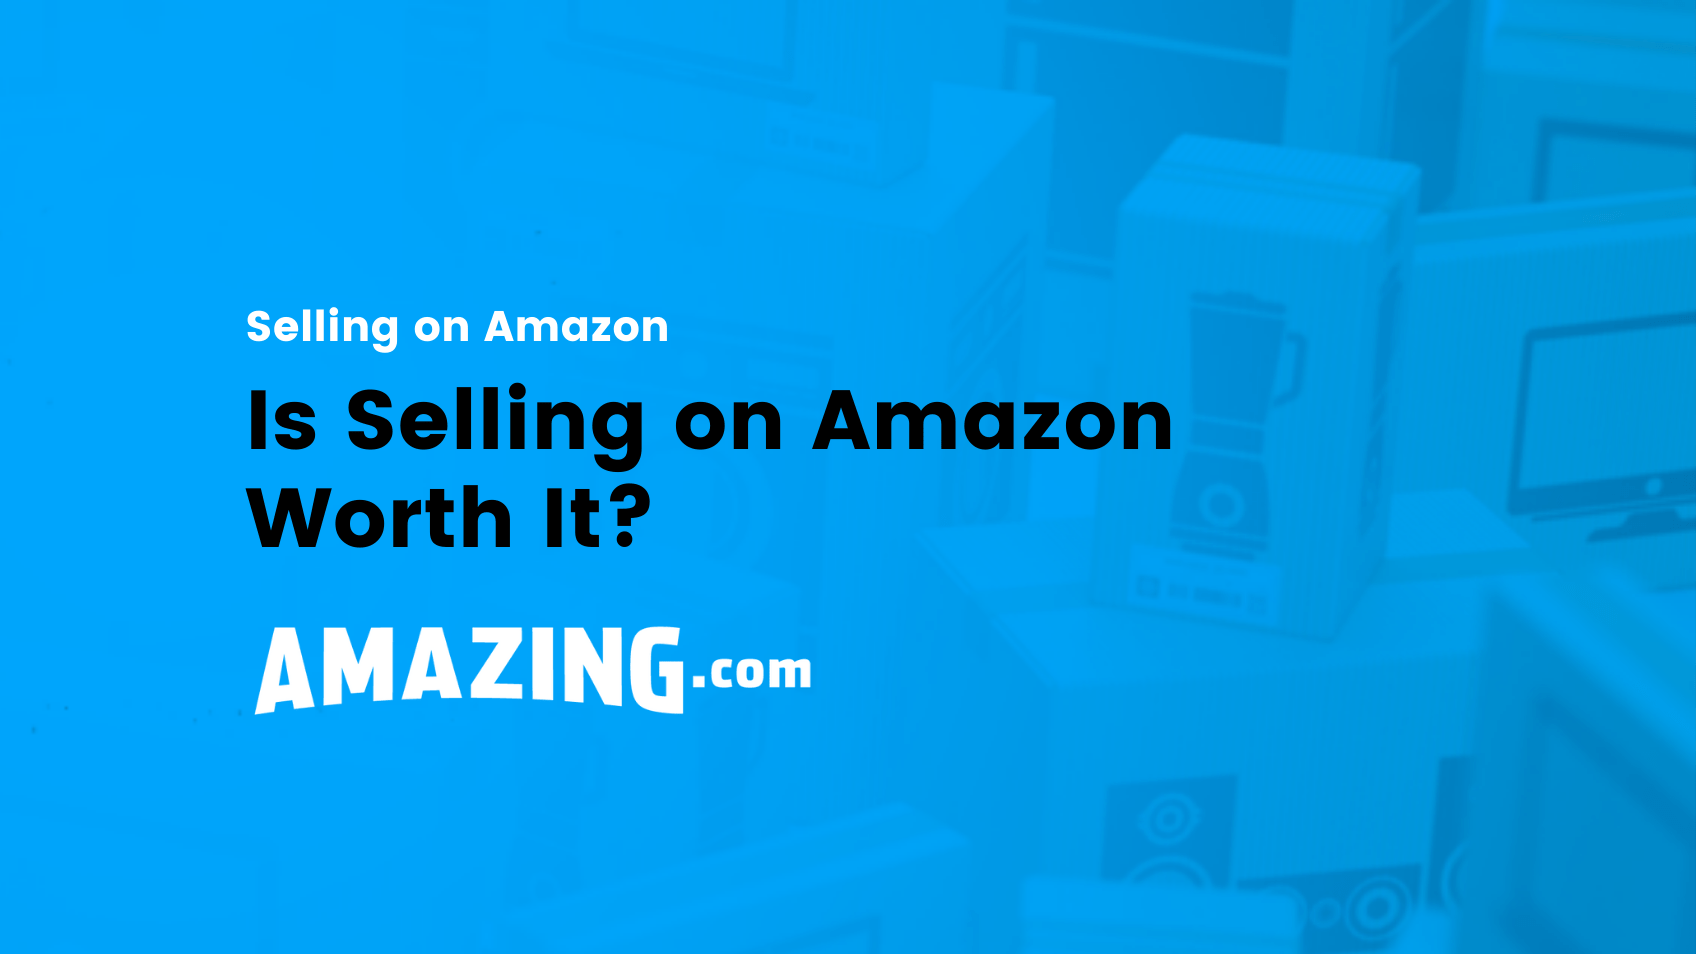 featured image:is selling on amazon worth it